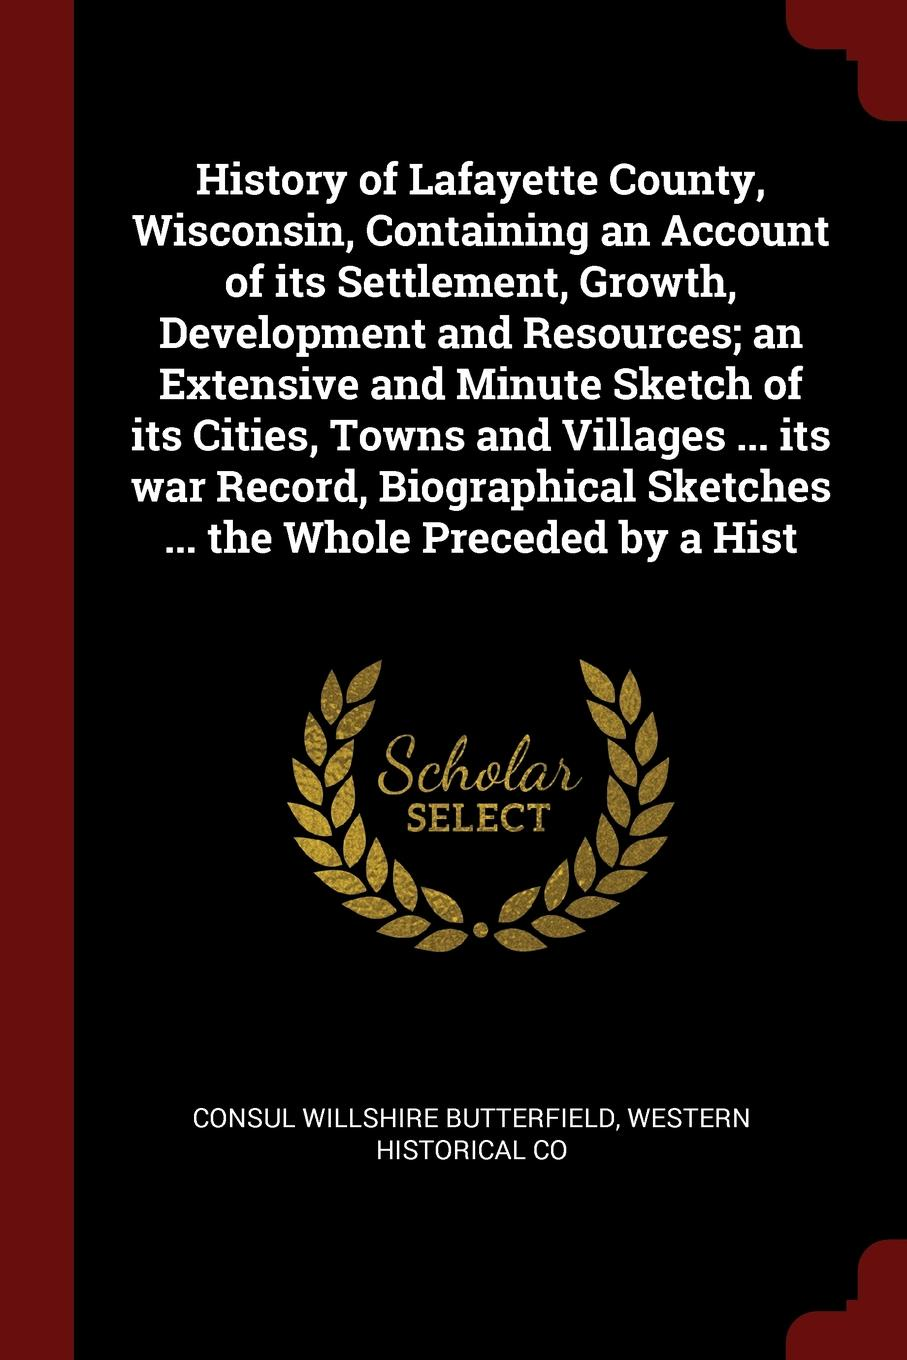 History of Lafayette County, Wisconsin, Containing an Account of its Settlement, Growth, Development and Resources; an Extensive and Minute Sketch of its Cities, Towns and Villages ... its war Record, Biographical Sketches ... the Whole Preceded b...